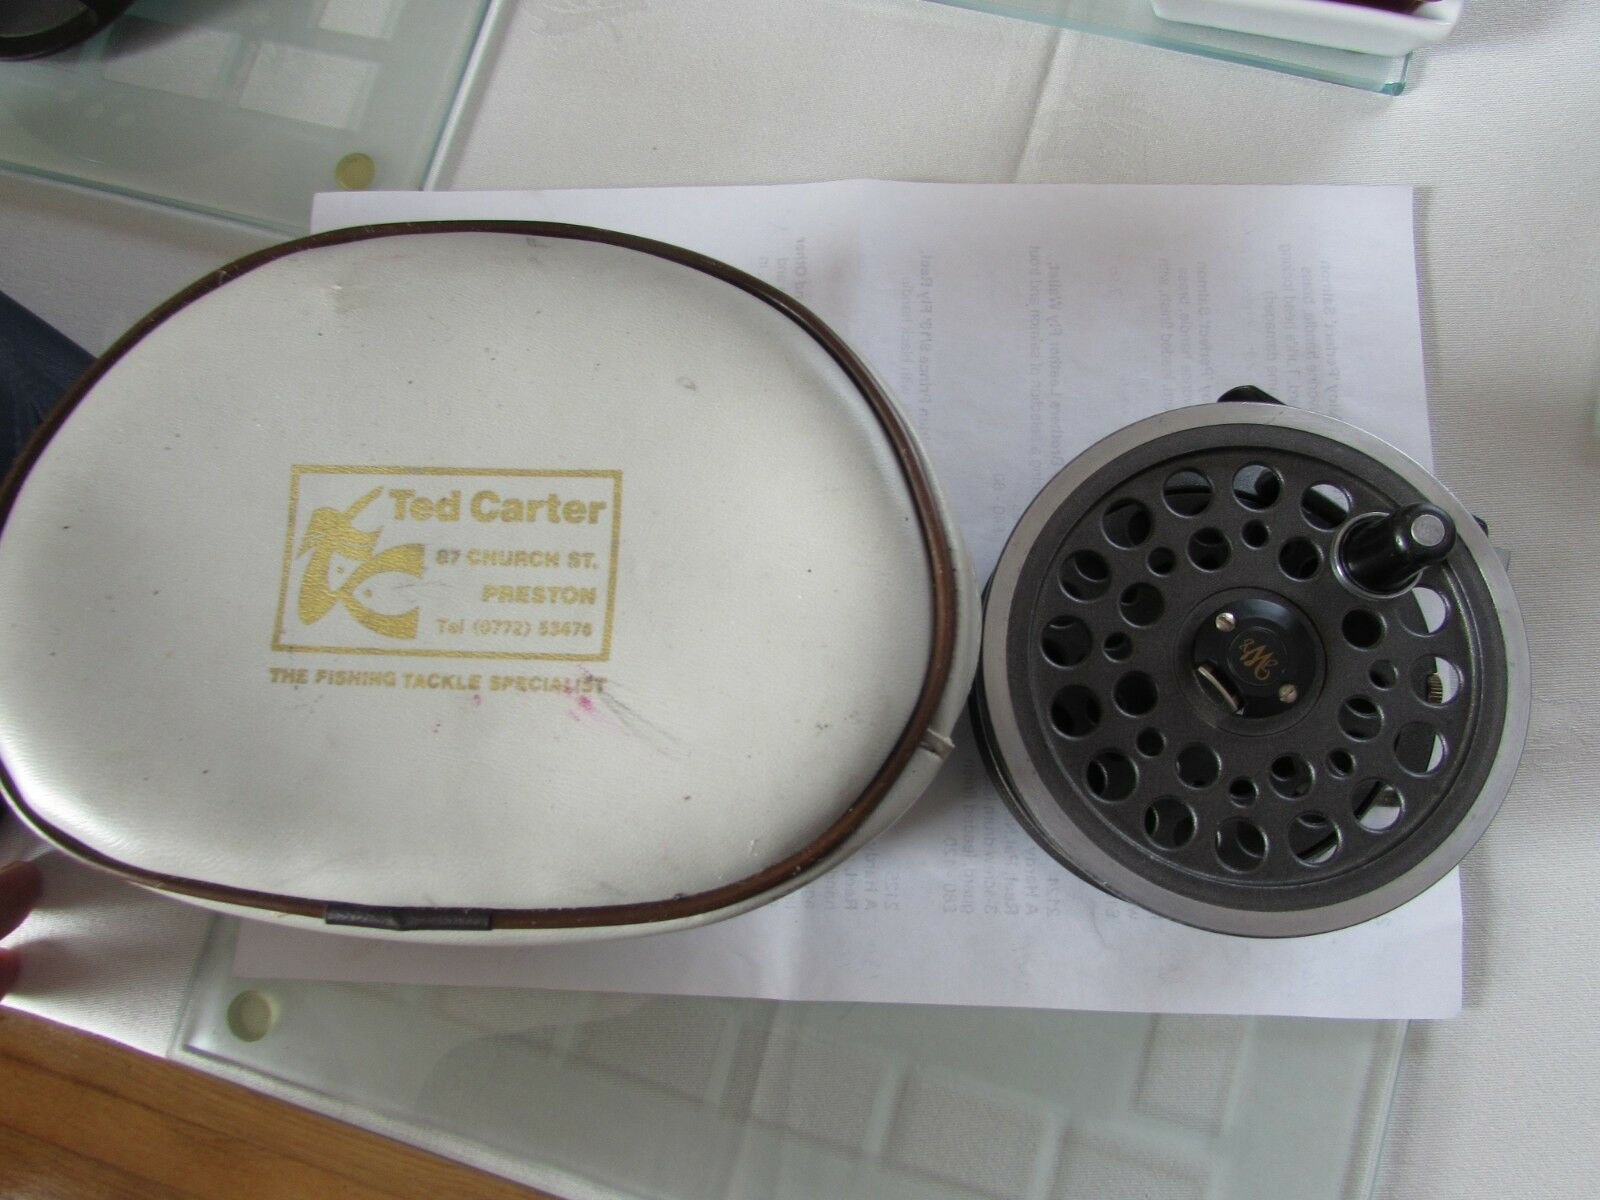 V good vintage youngs 1540 wide drum  expert salmon fly fishing reel 4.25   ,.